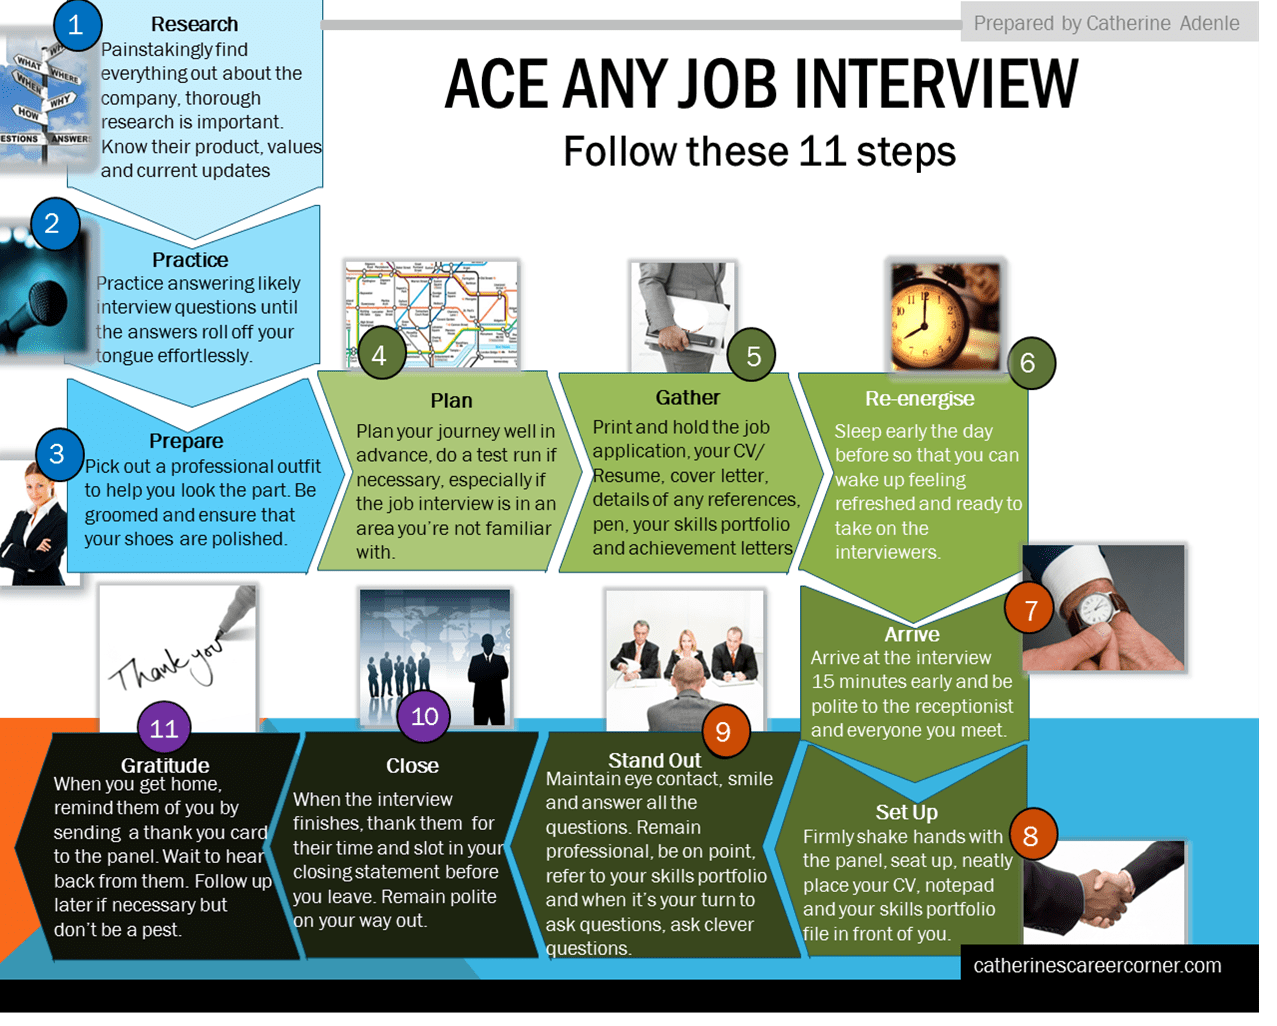 video 11 ways to ace any job interview catherine s career now that you have watched the video 11 ways to ace any job interview and our post do you have any further job interview tips for our readers